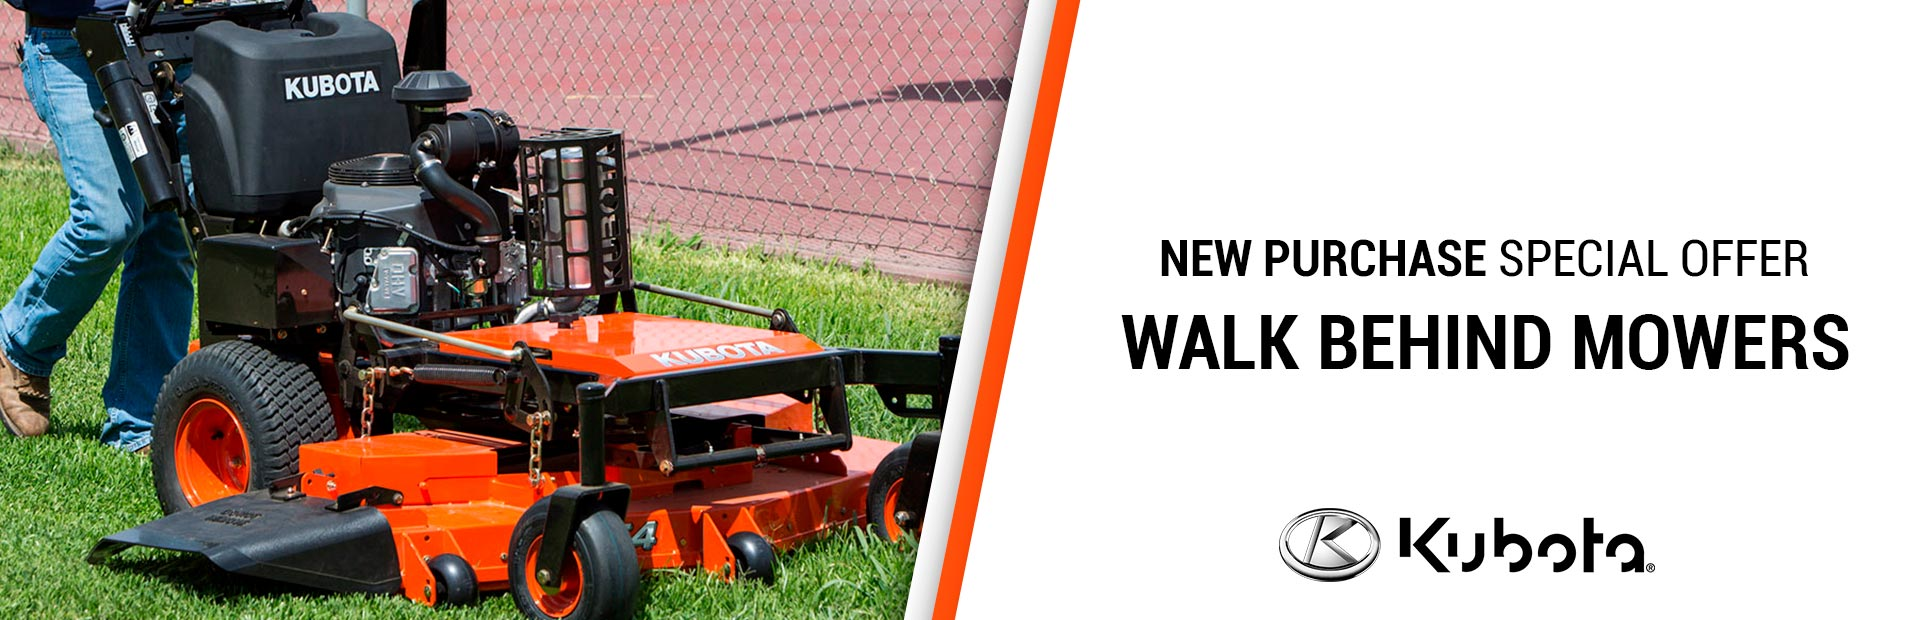 Kubota: NEW PURCHASE SPECIALS-WALK BEHIND MOWERS